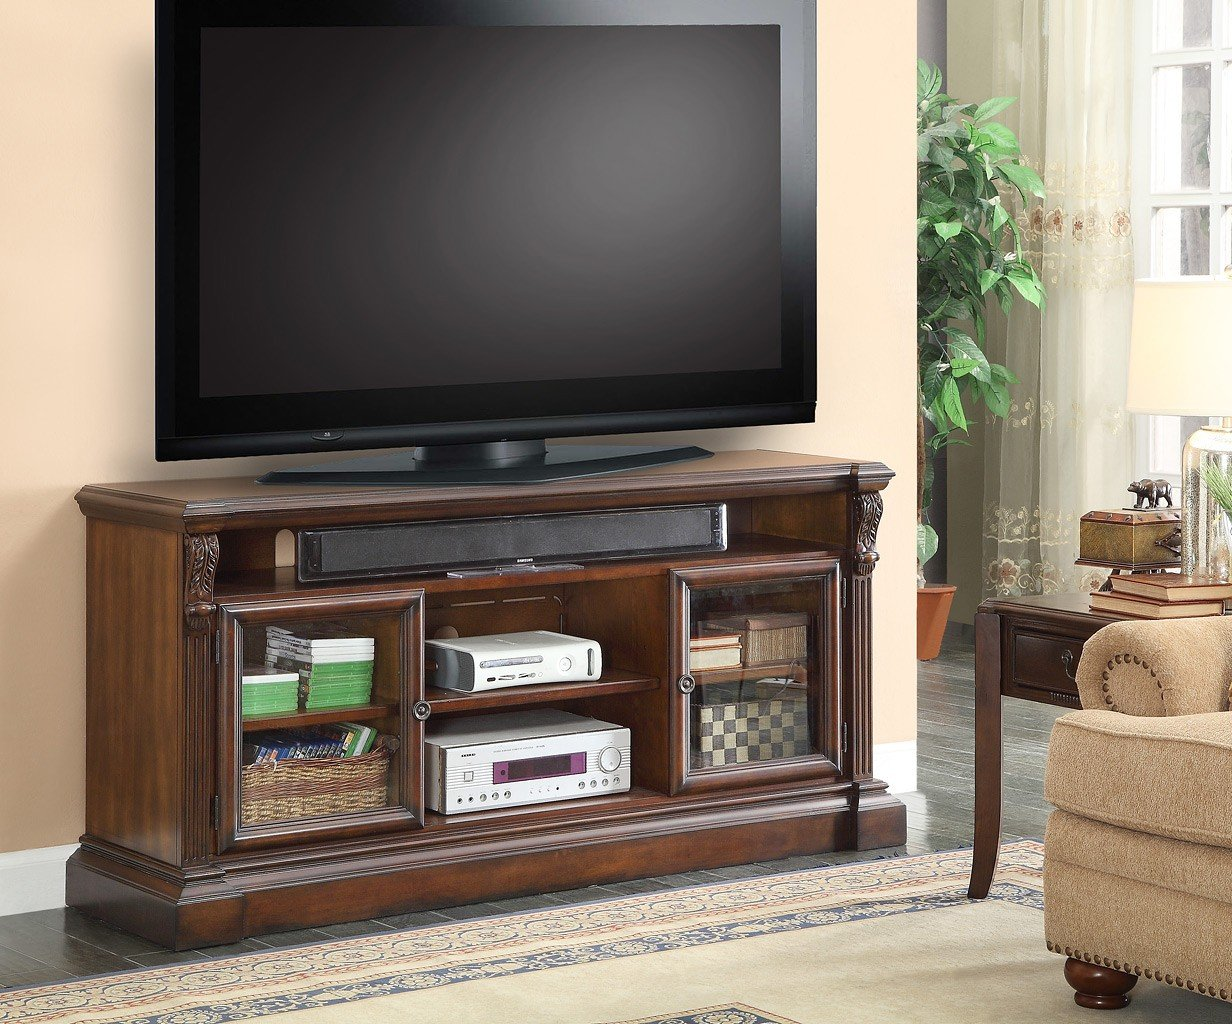 Marquis 65 Inch Tv Console Parker House Furniture Cart